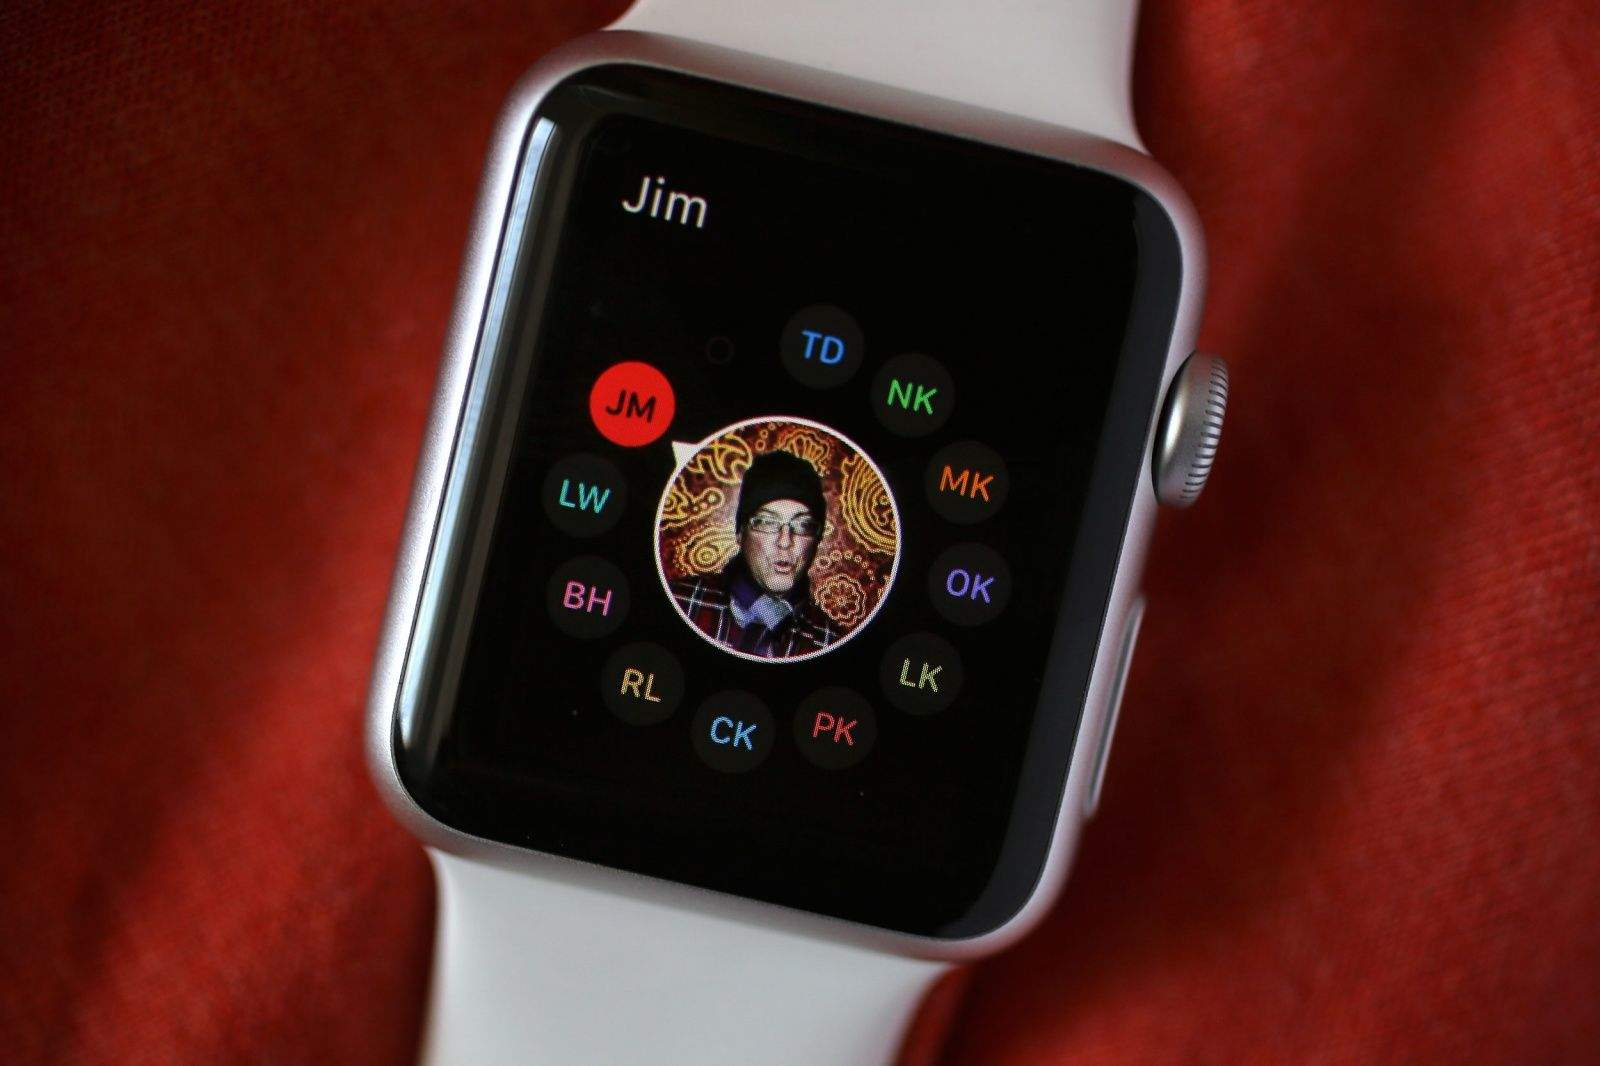 How to set up your Apple Watch Friends screen